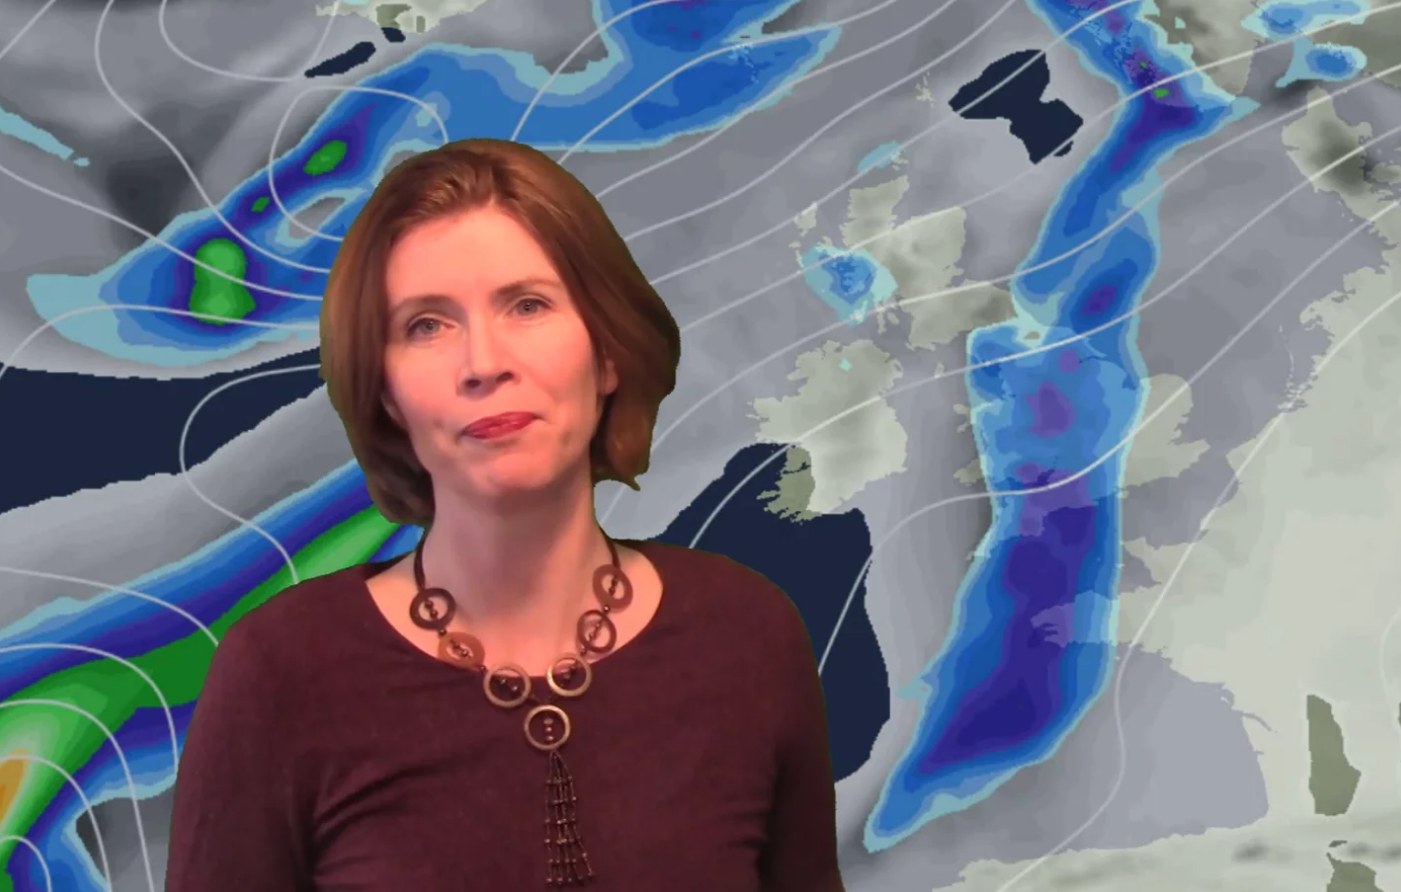 Video: Much milder, some rain too